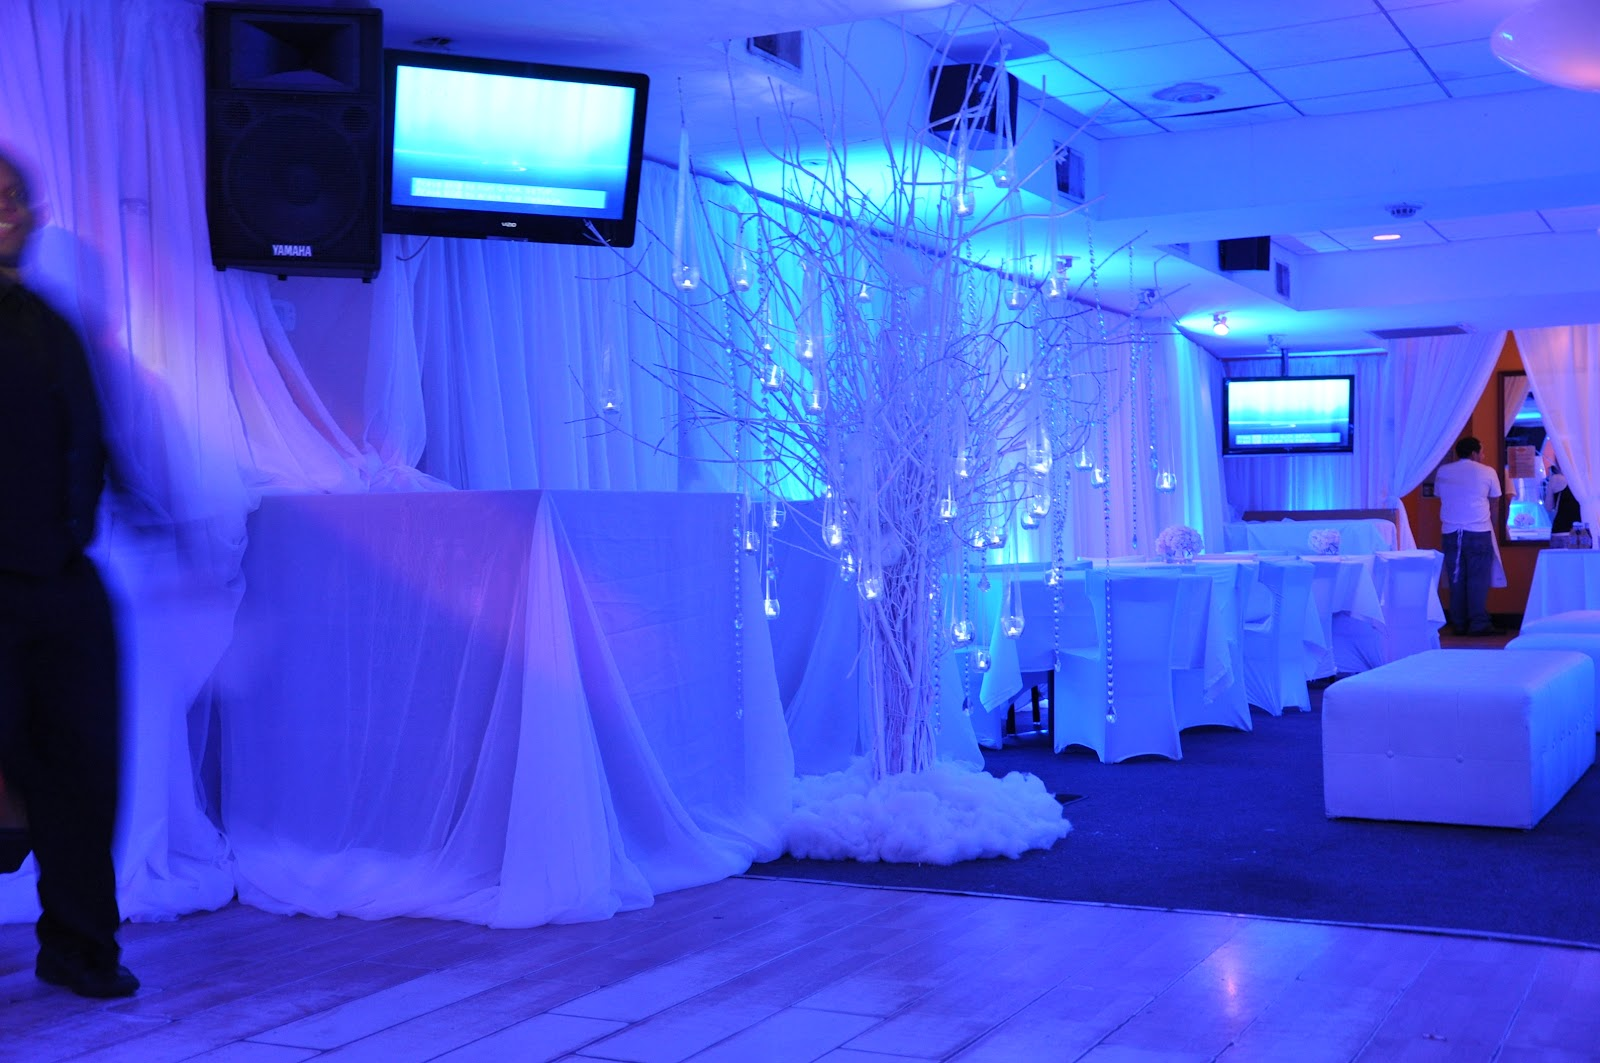 lounge decor in our last bat mitzvah winter wonderland davinci